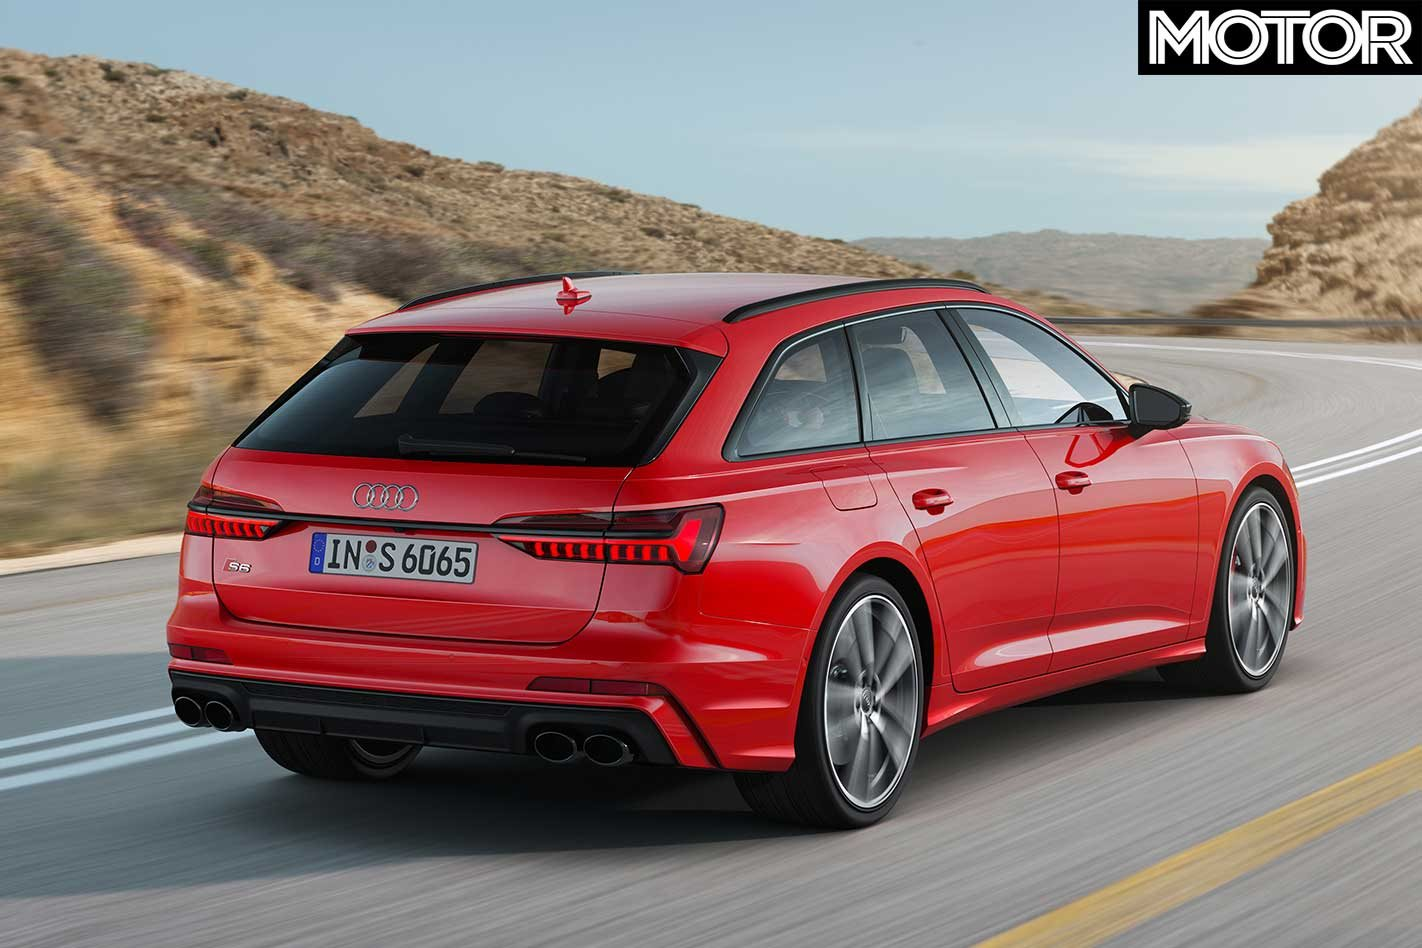 2020 Audi S6 And S7 Revealed Motor